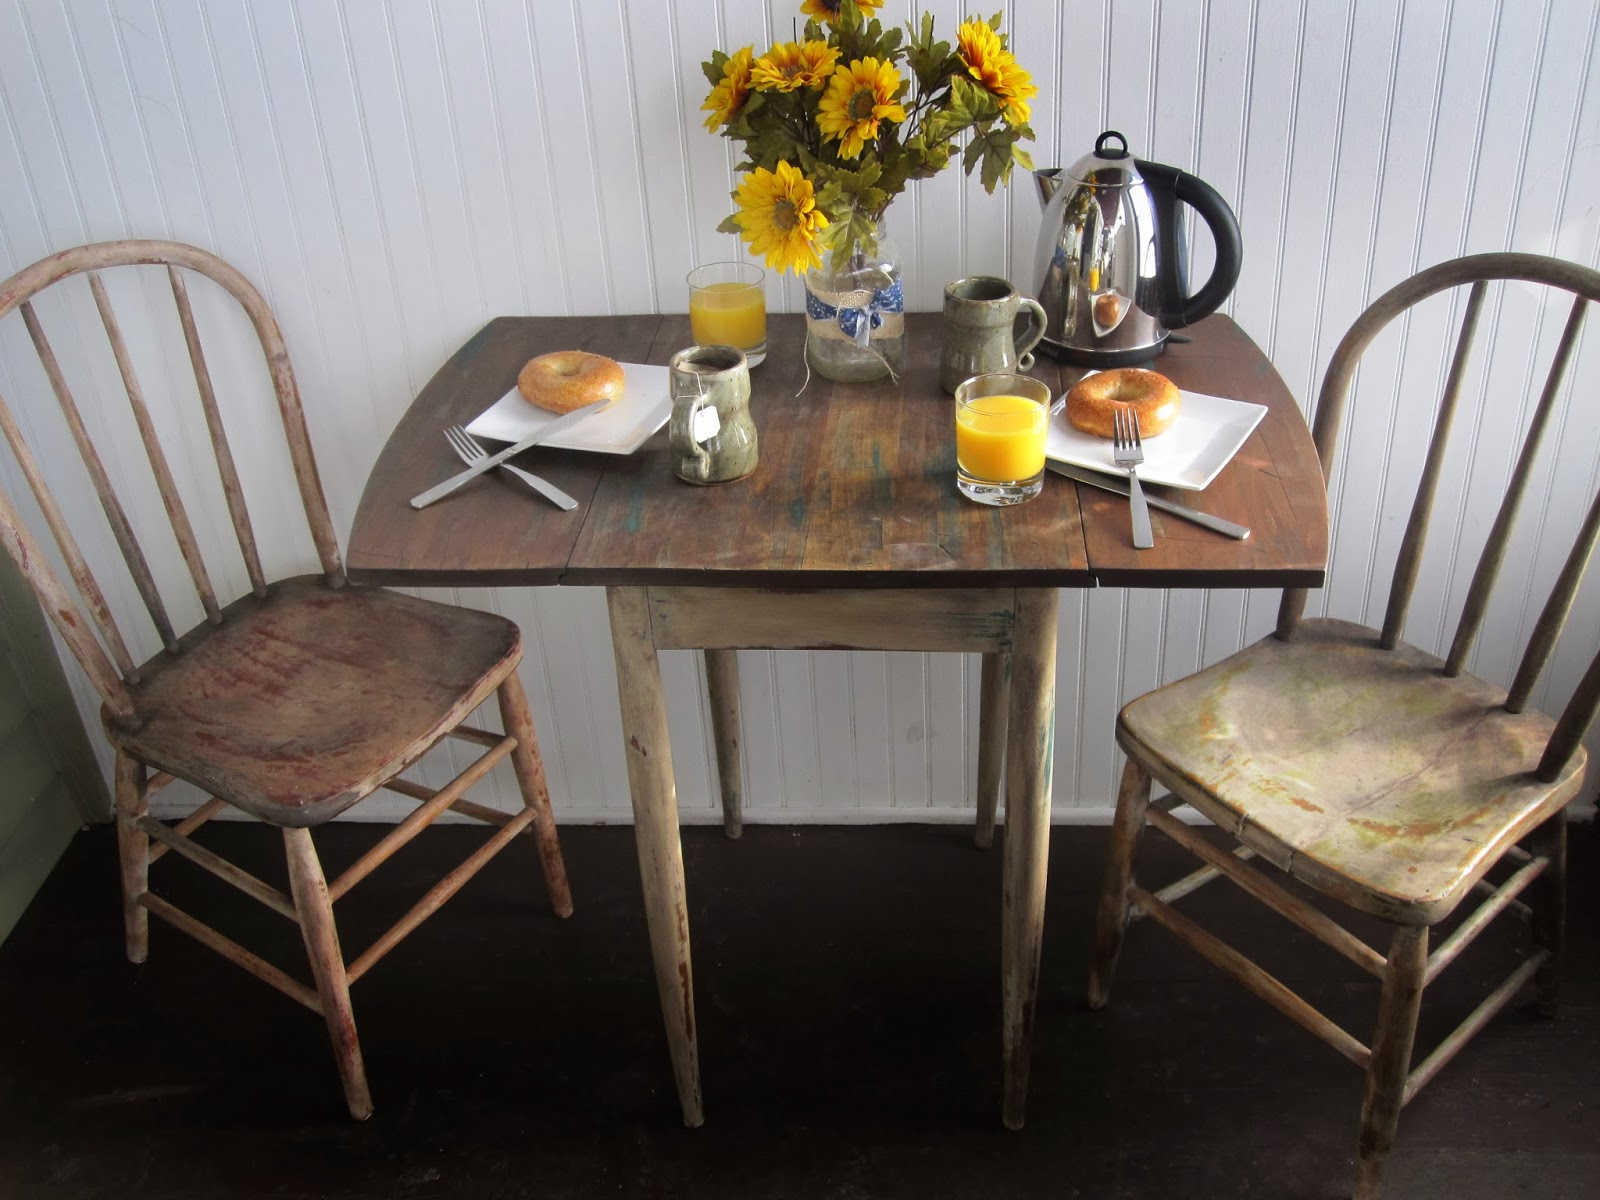 Chubby junk two person dining set dining table and chairs - Small two person dining table ...